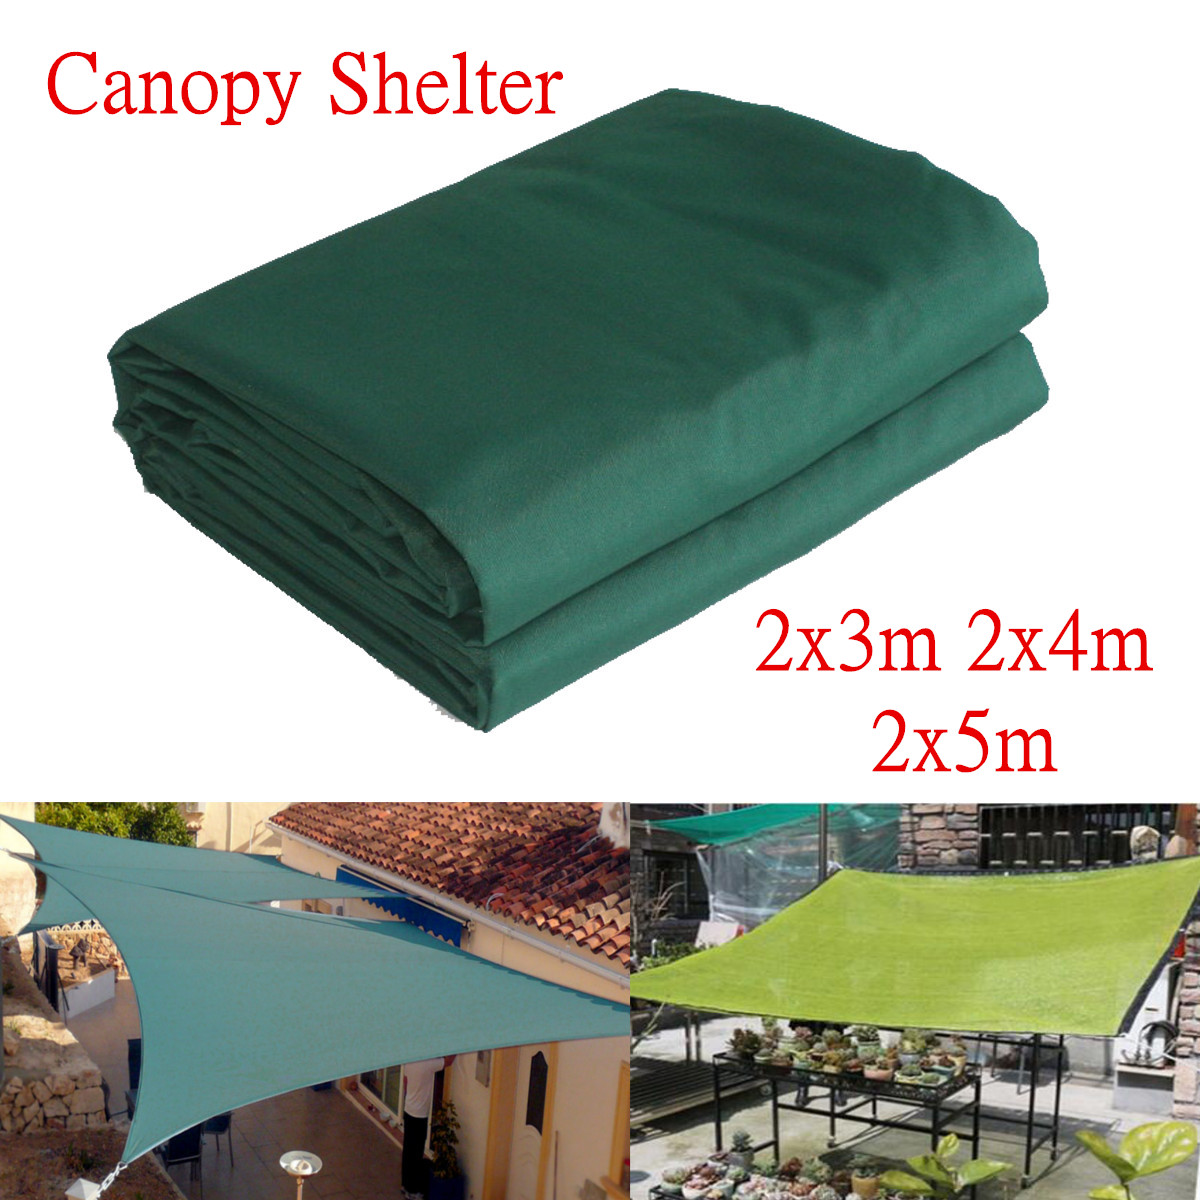 3/4/5m Heavy Duty Shade Canopies Outdoor Camping Hiking Yard Shelters Cover Waterproof Garden Patio Awning Accessories Green